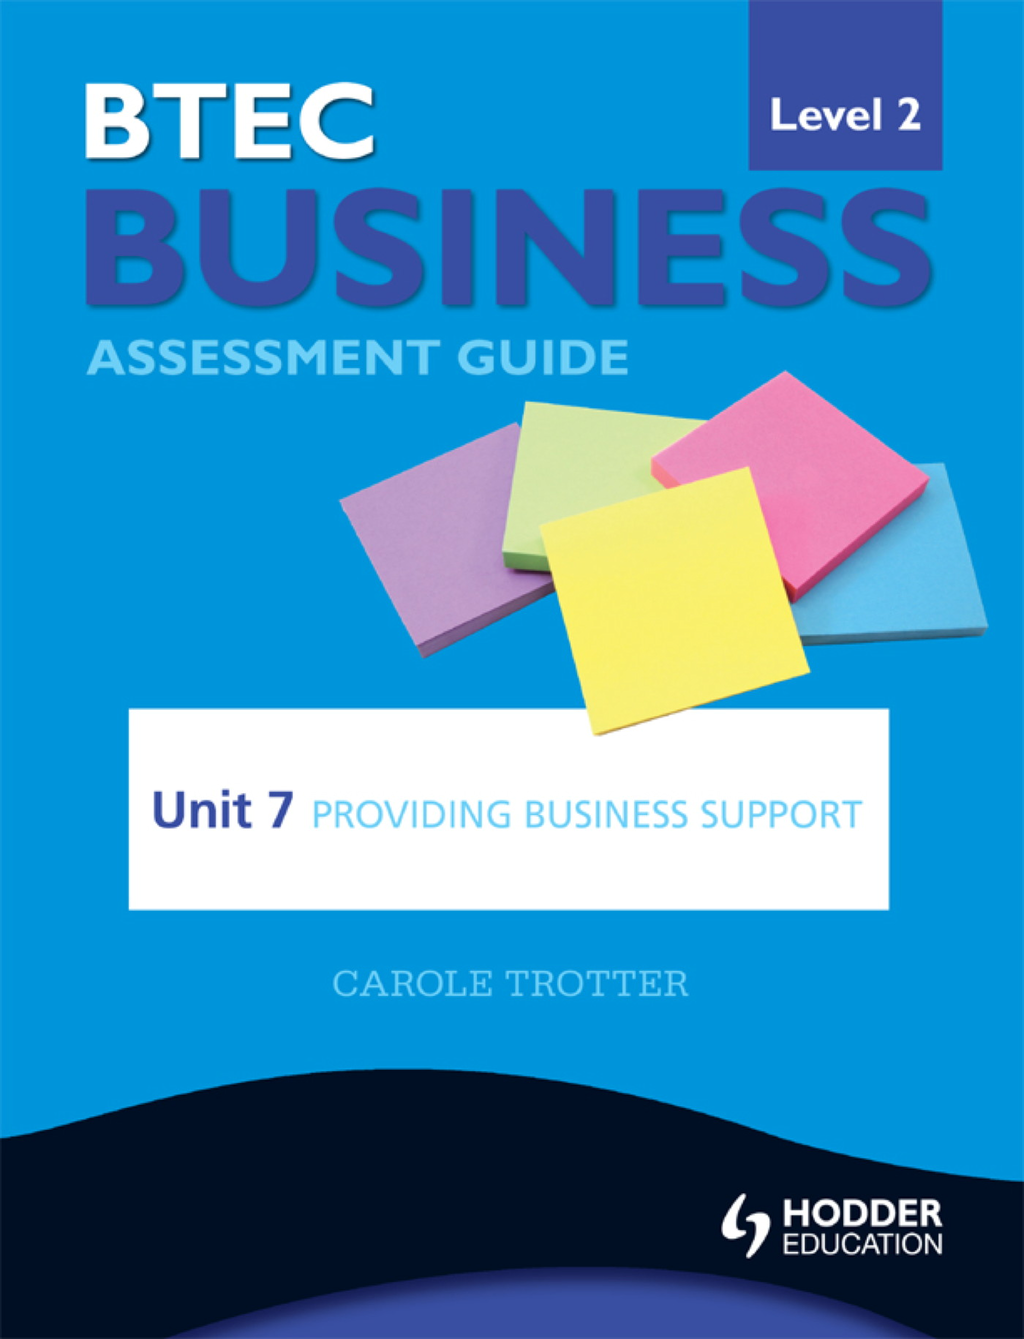 BTEC Business Level 2 Assessment Guide: Unit 7 Providing Business Support